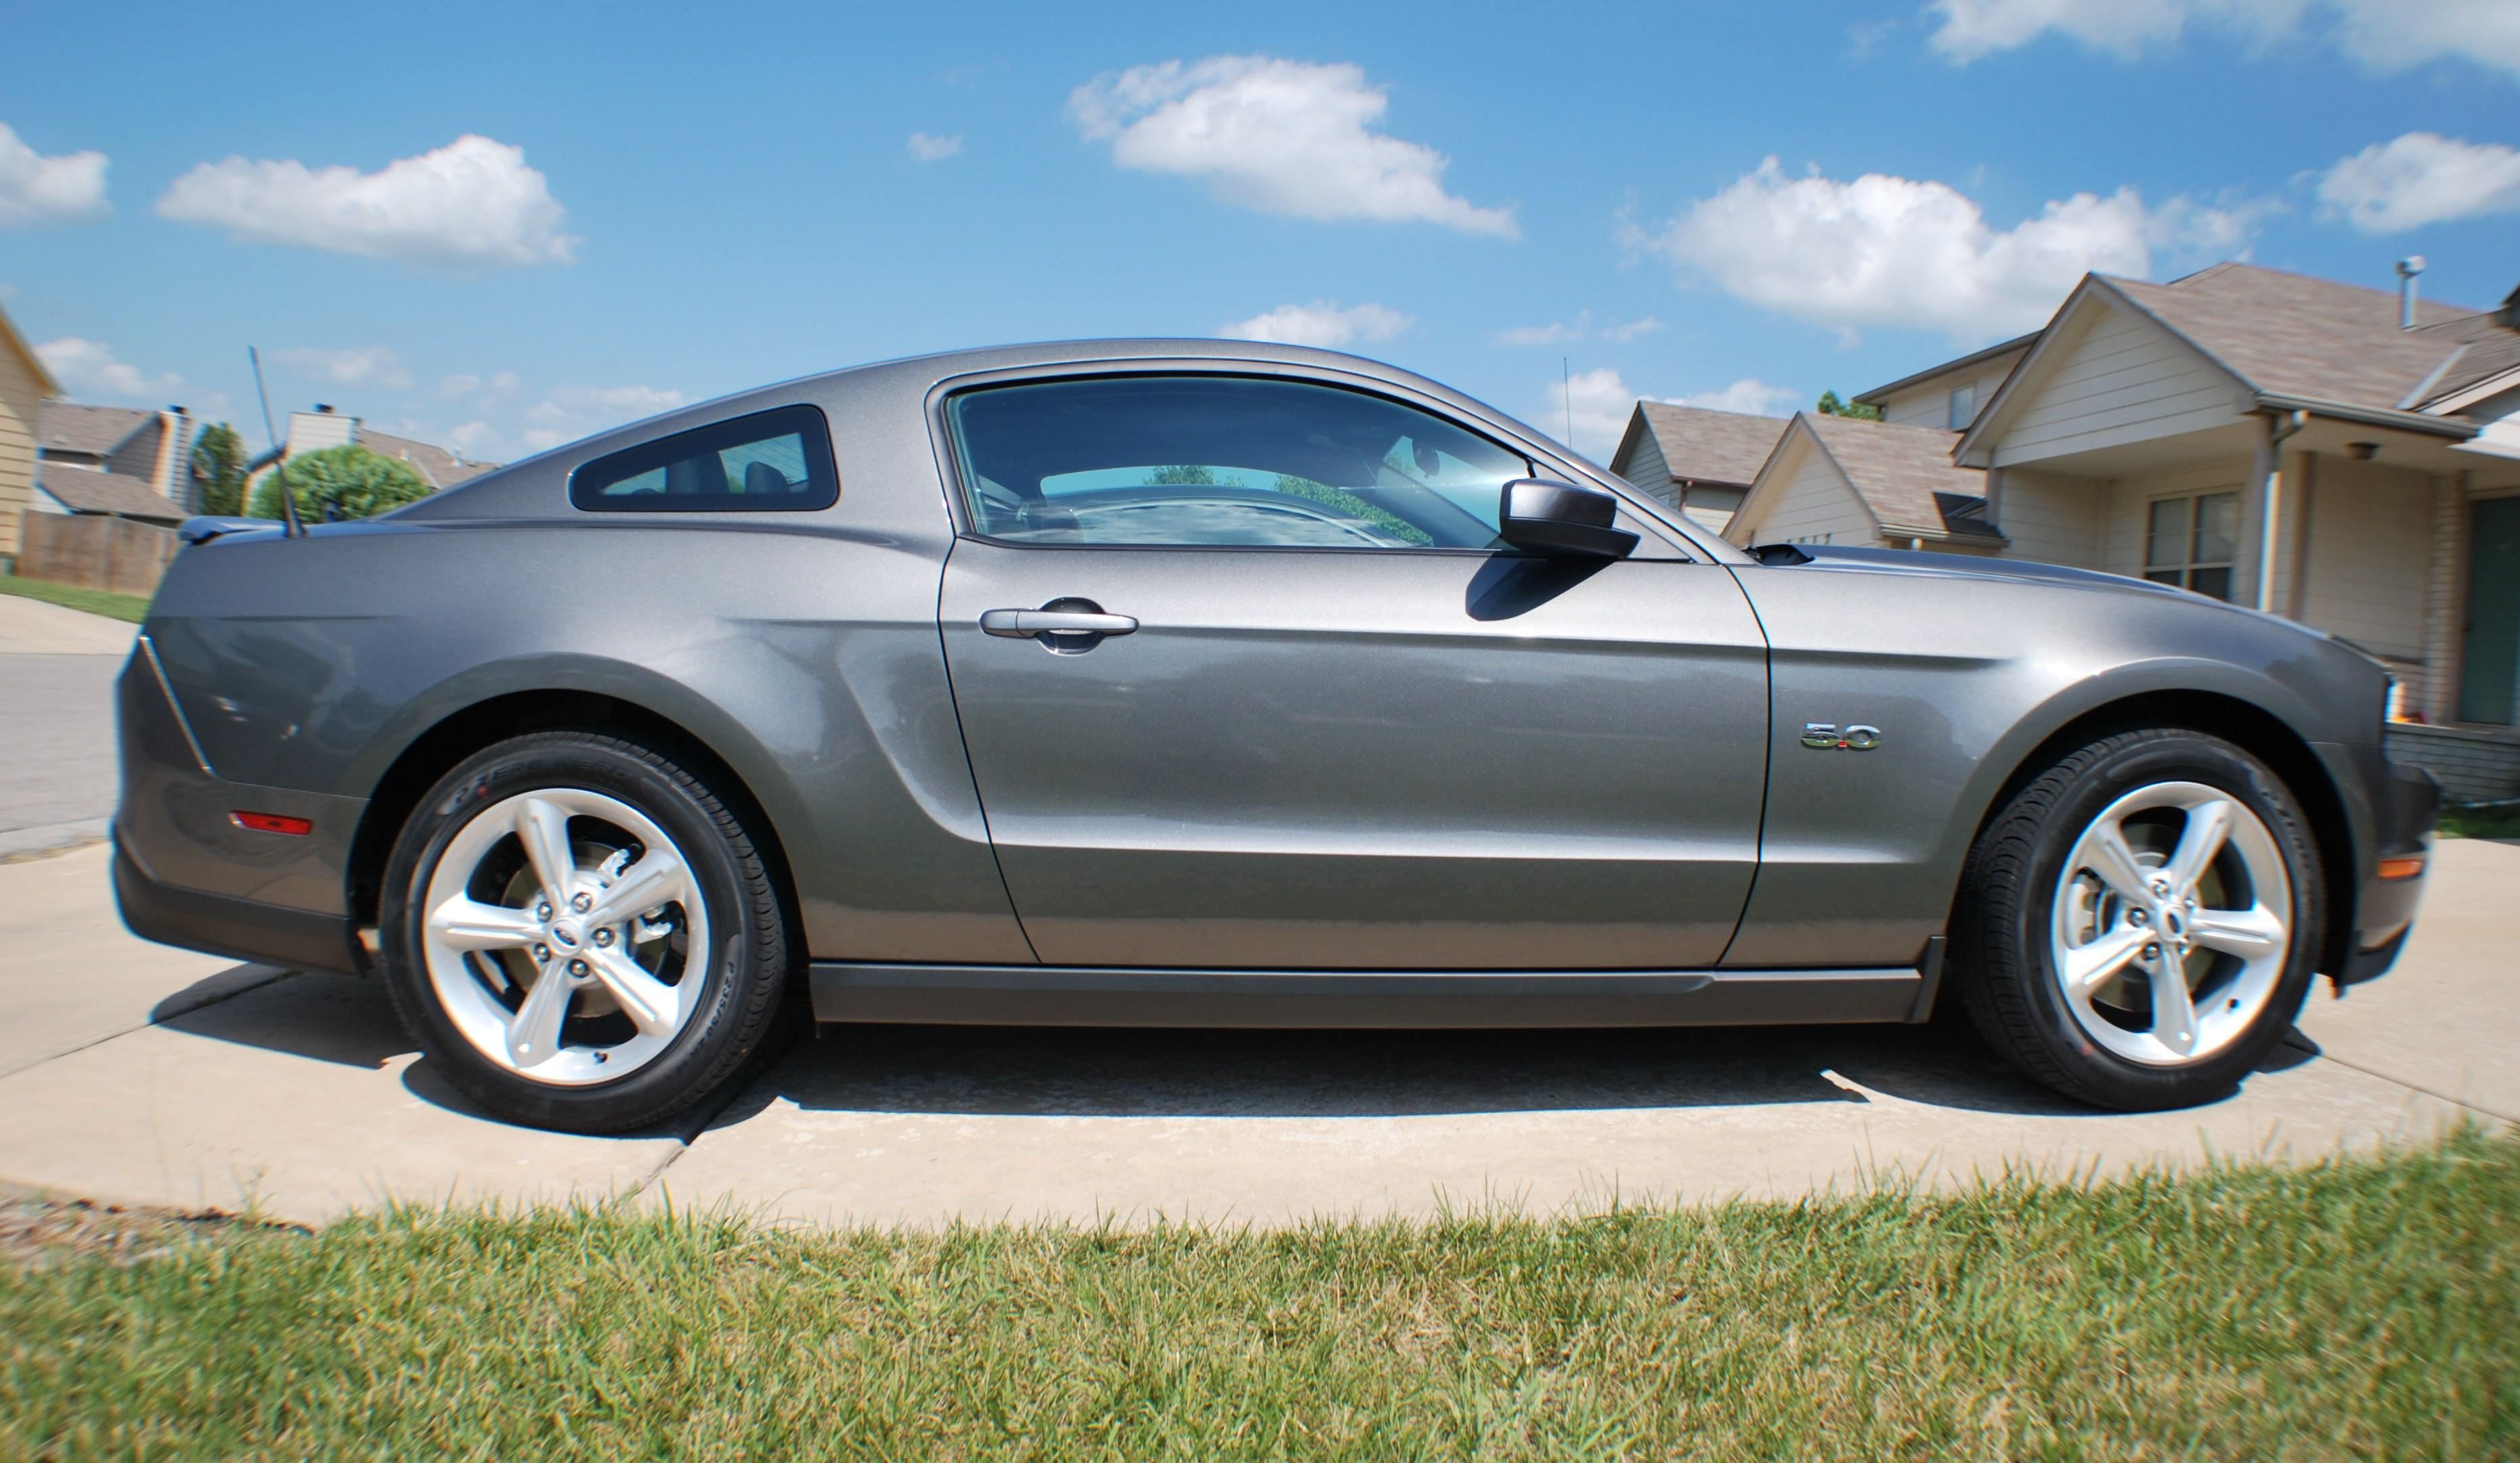 luillo69 2011 Ford Mustang 14580111